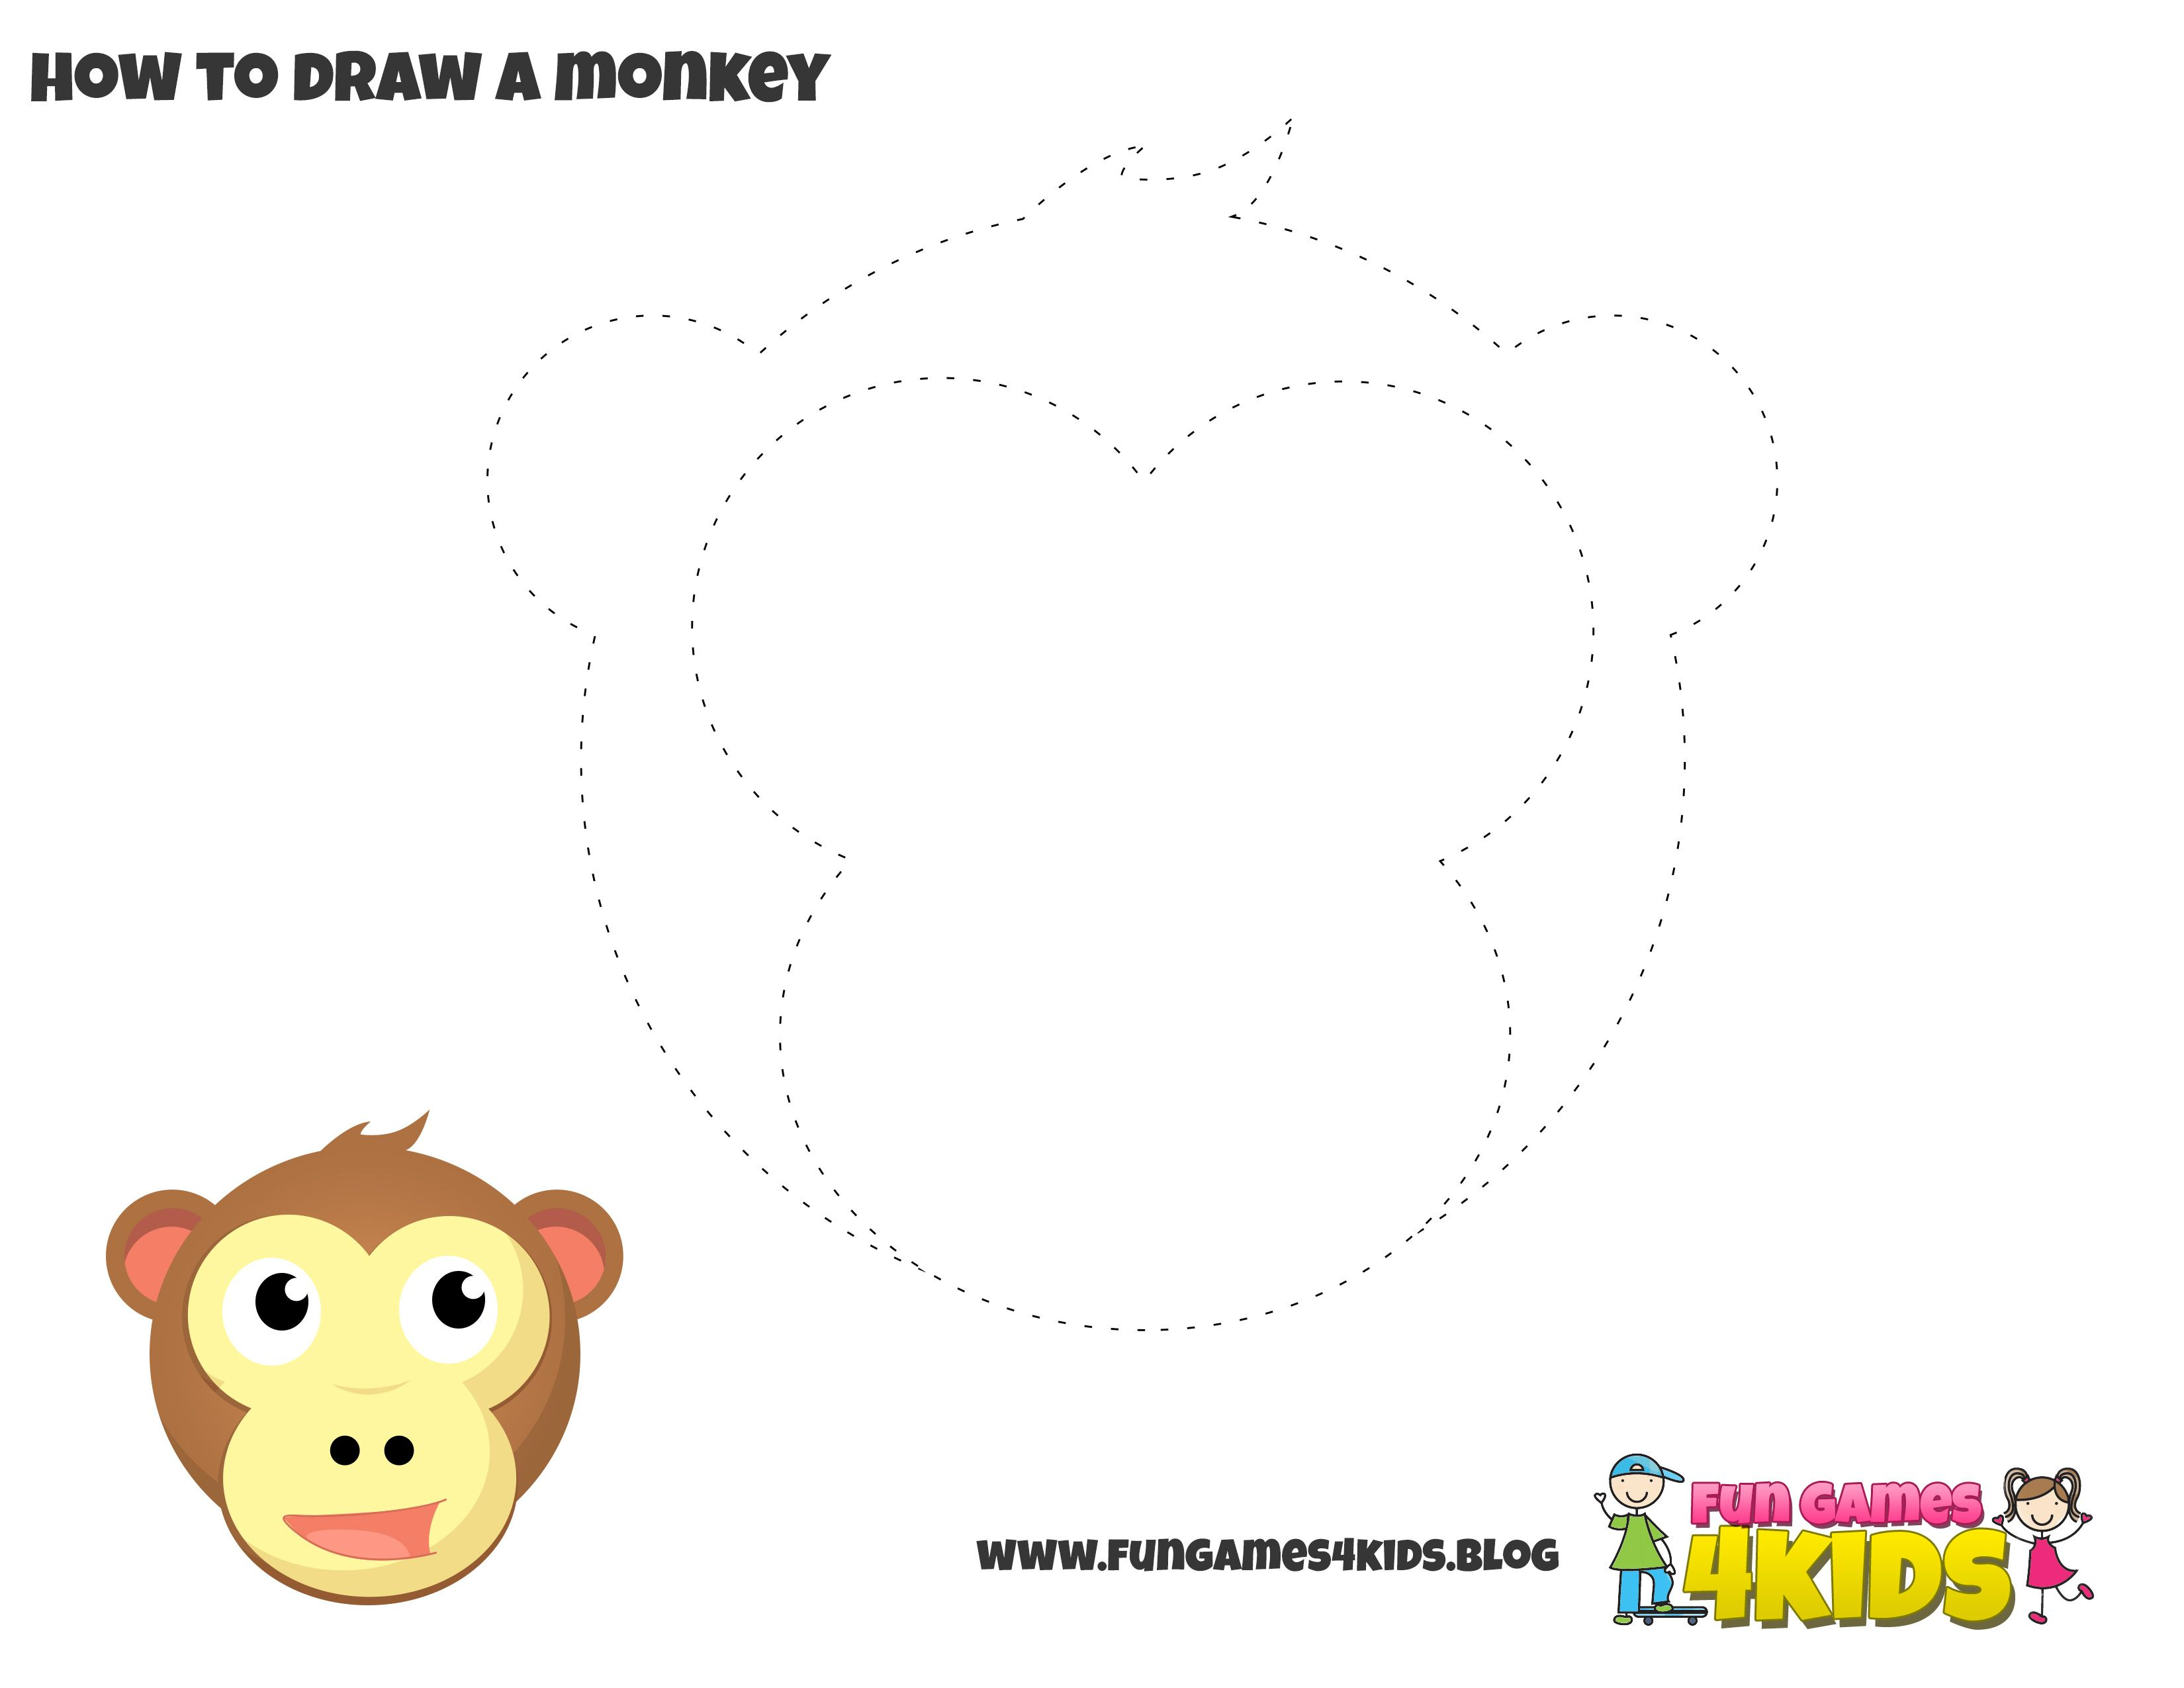 How To Draw Monkey From Fungames4kidsub